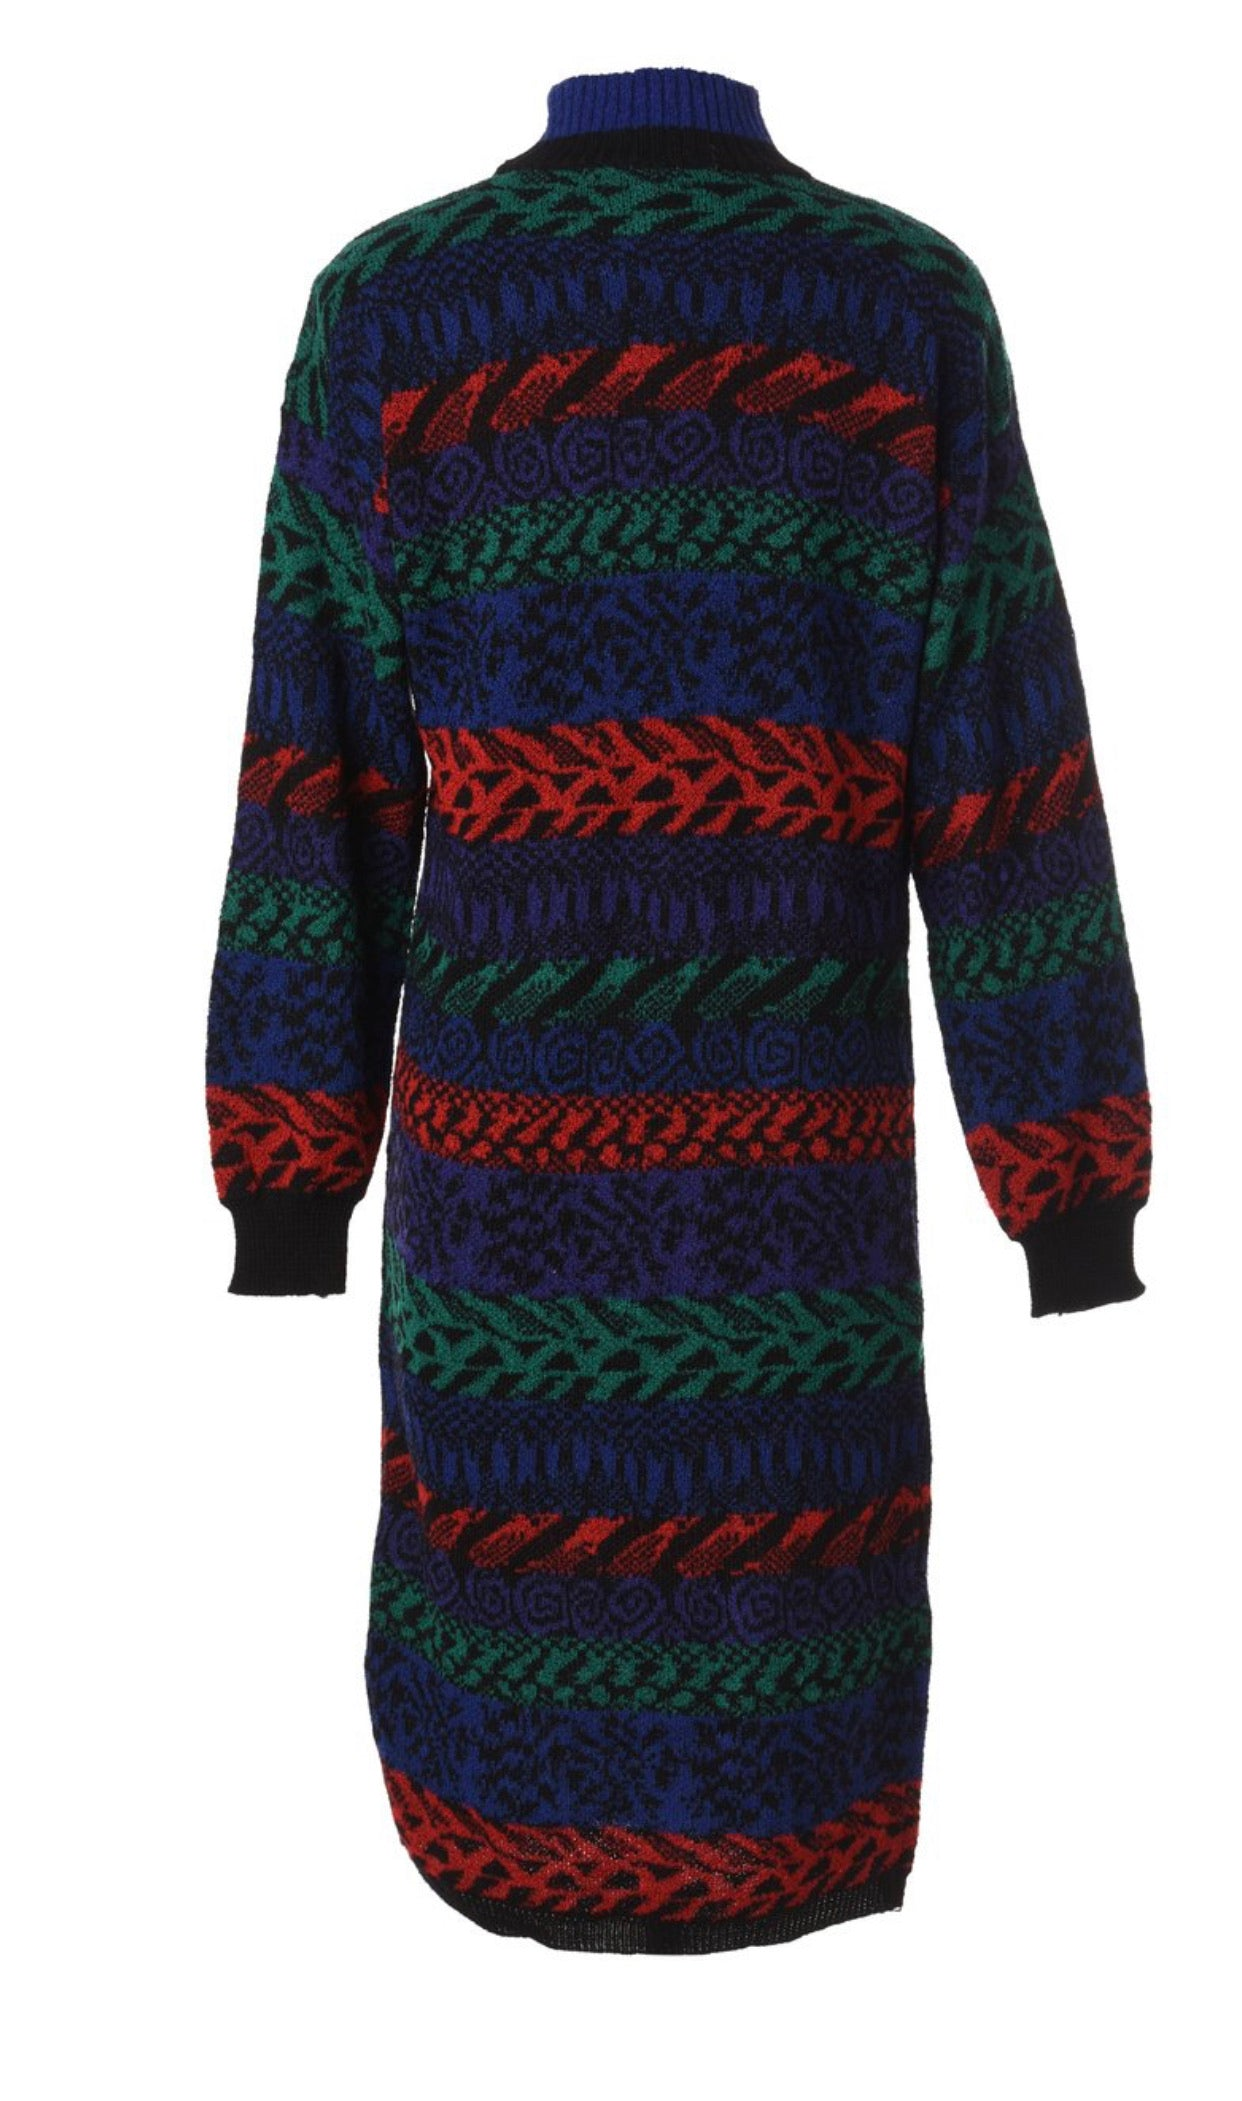 The Montgomery Knit Dress